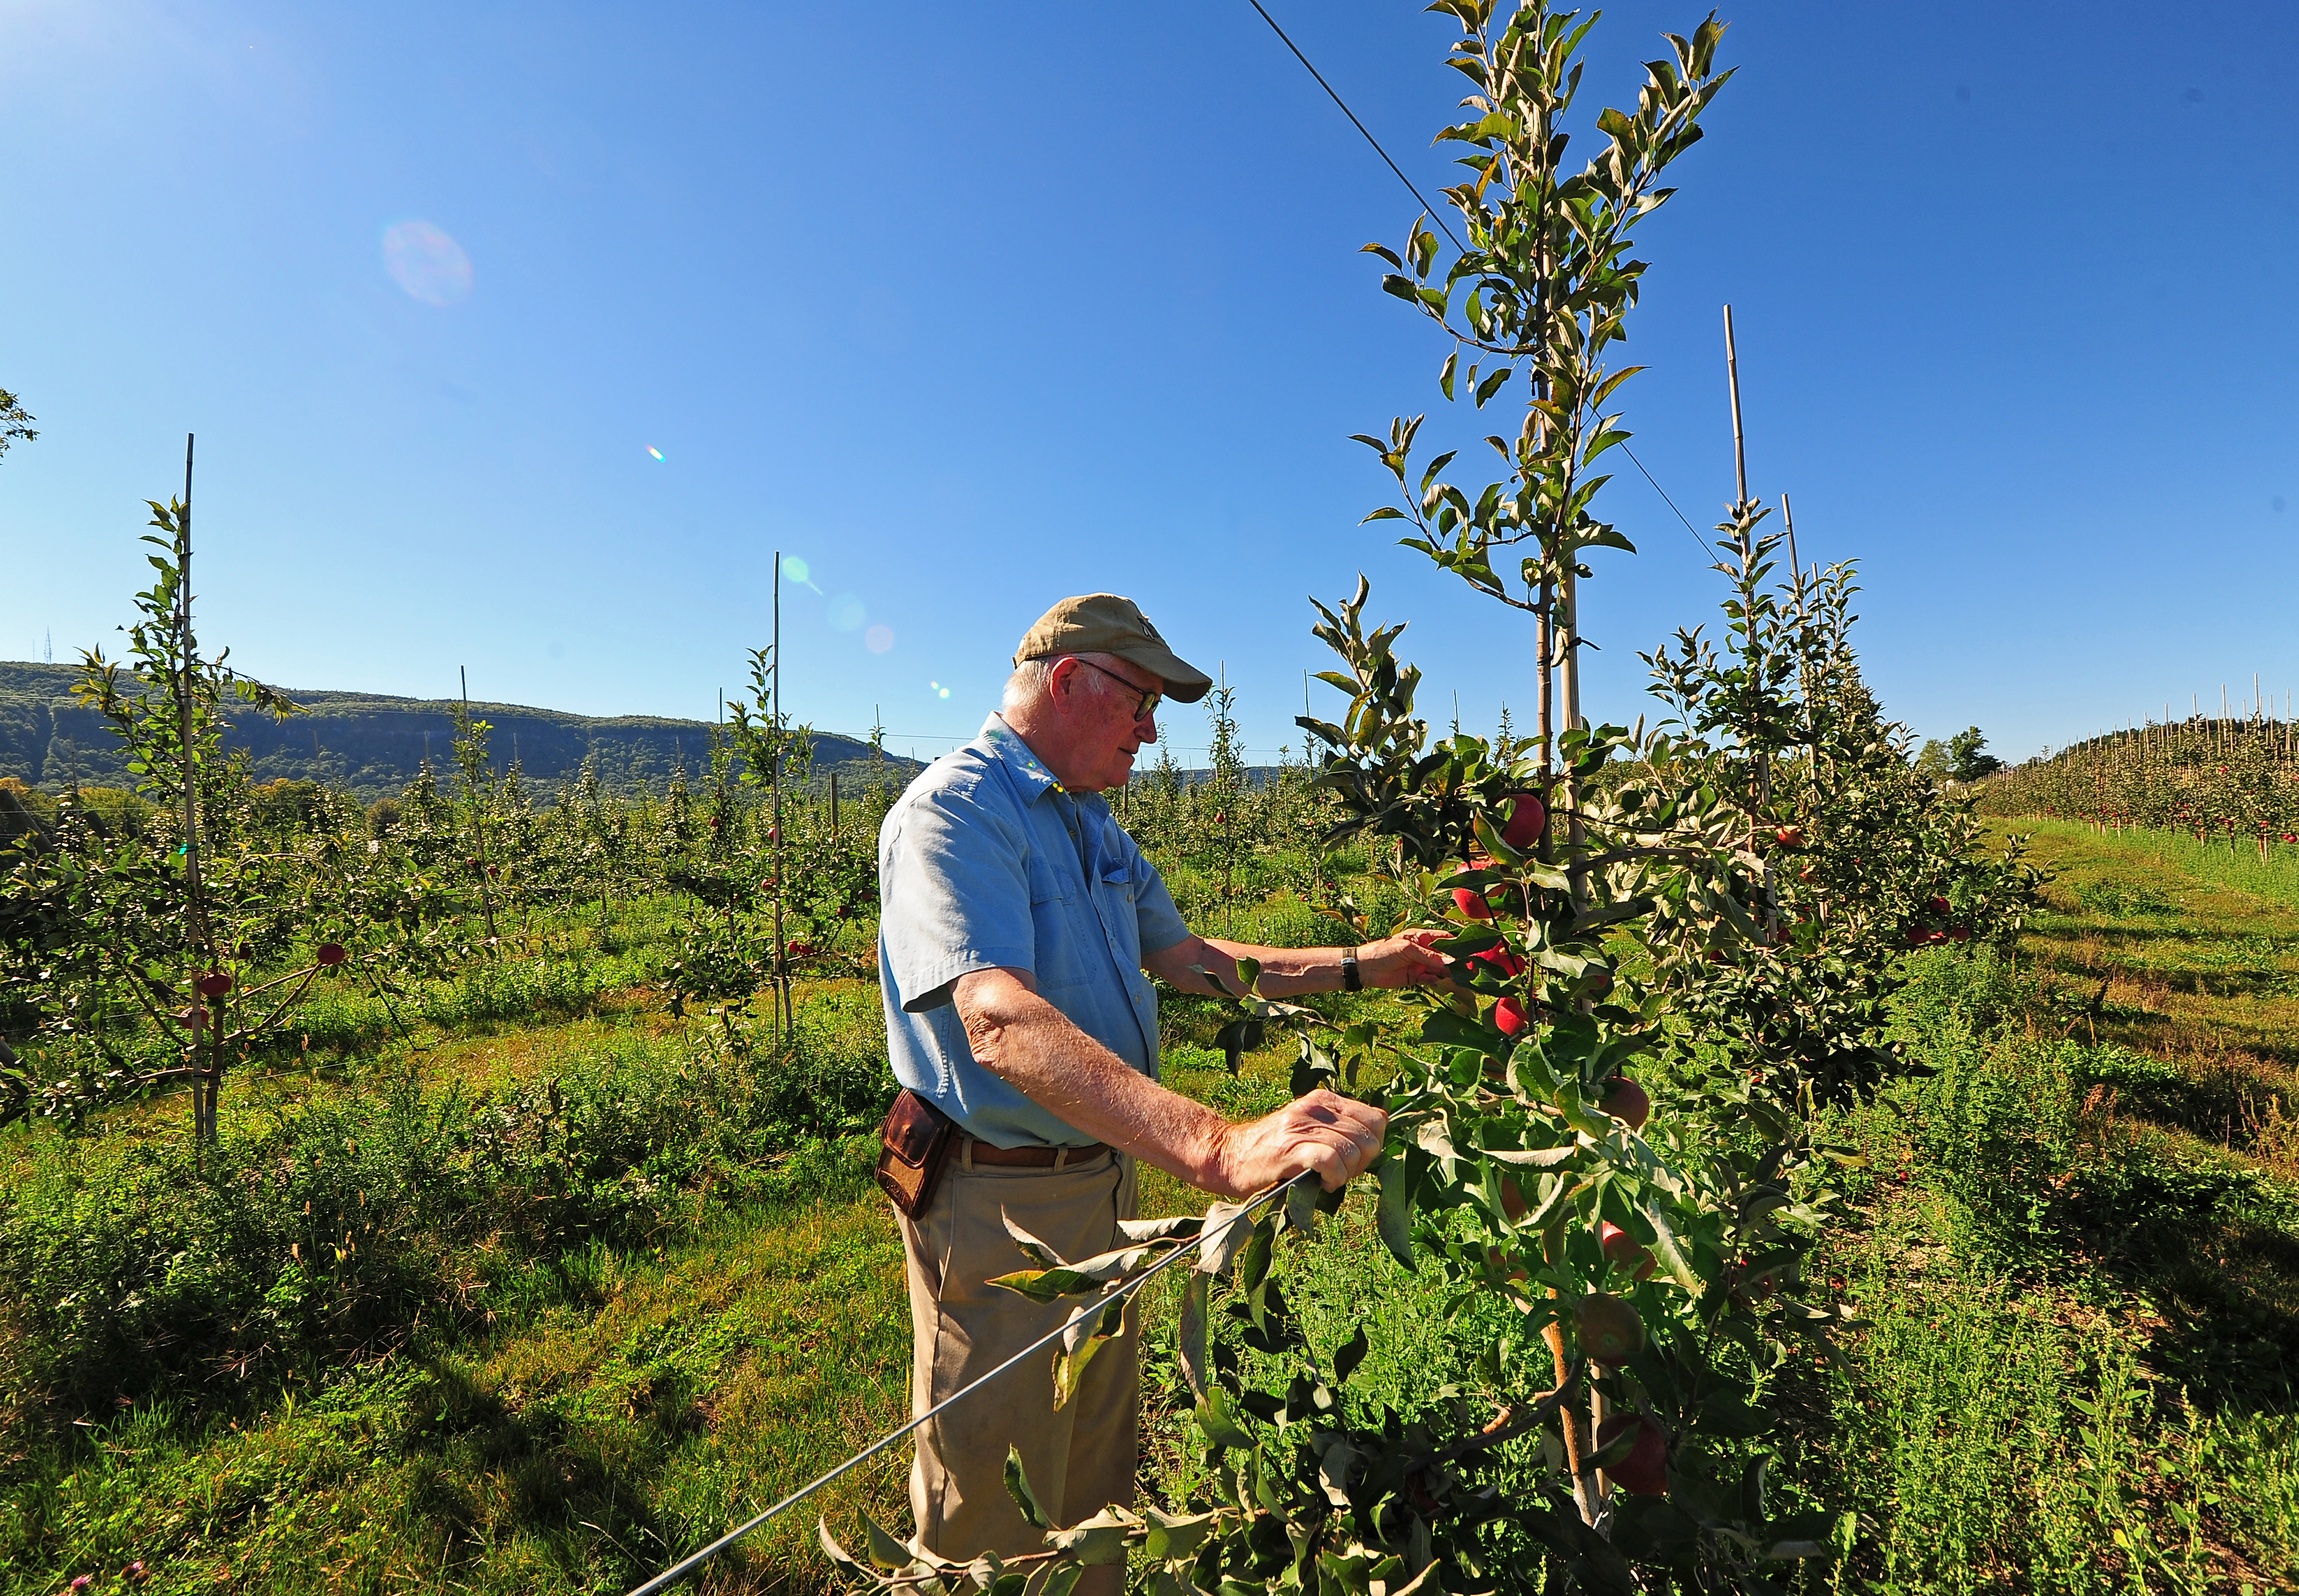 Peter Ten Eyck II, whose father founded Indian Ladder Farms, tends to the apple orchard at his family's famous farm. Indian Ladder's cidery is grown from apples on OSI-conserved lands.